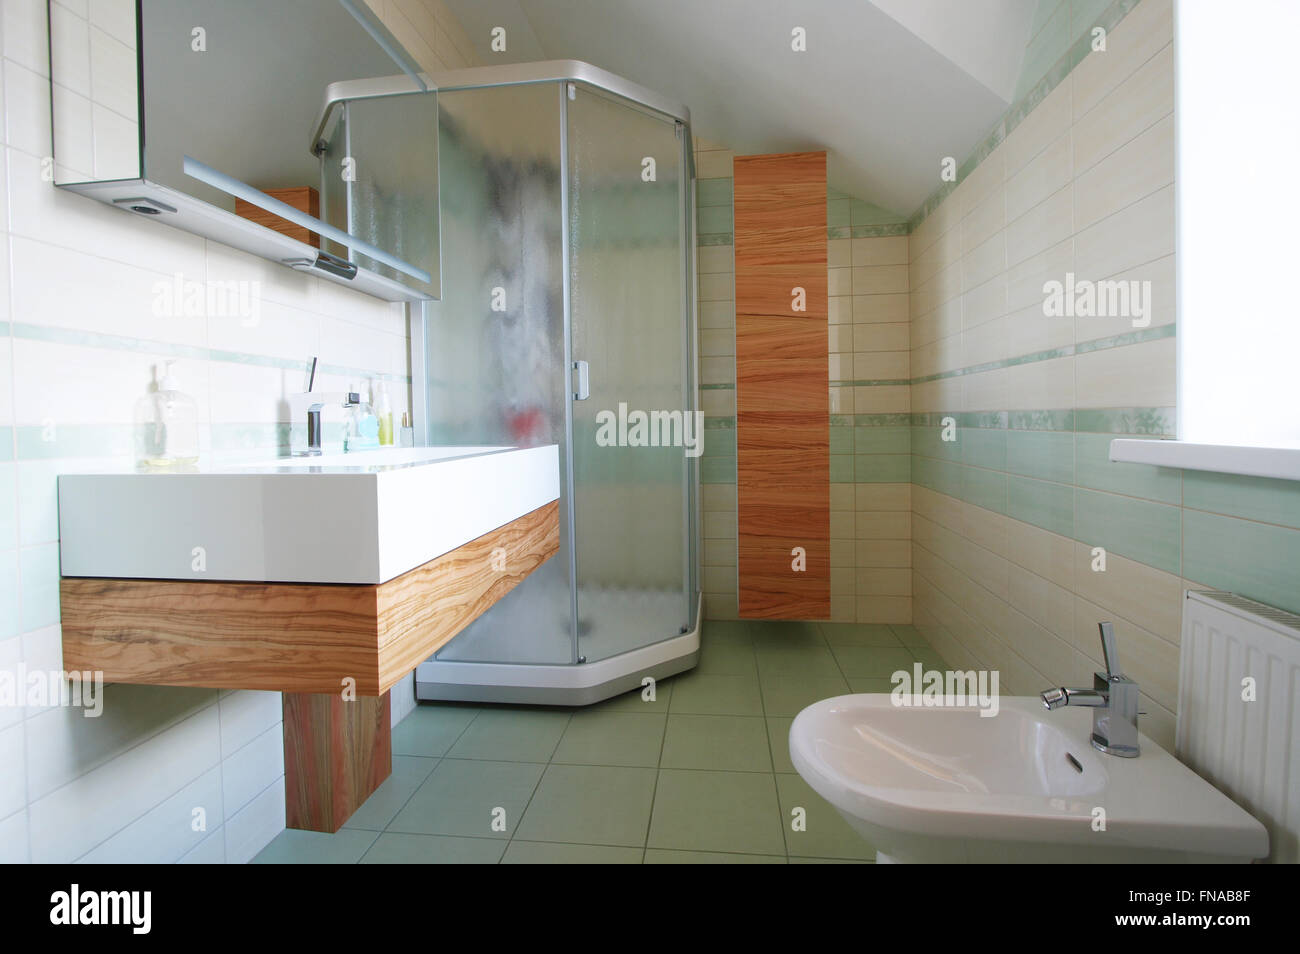 Bathroom Toilet Bidet Shelf Stock Photos Bathroom Toilet Bidet